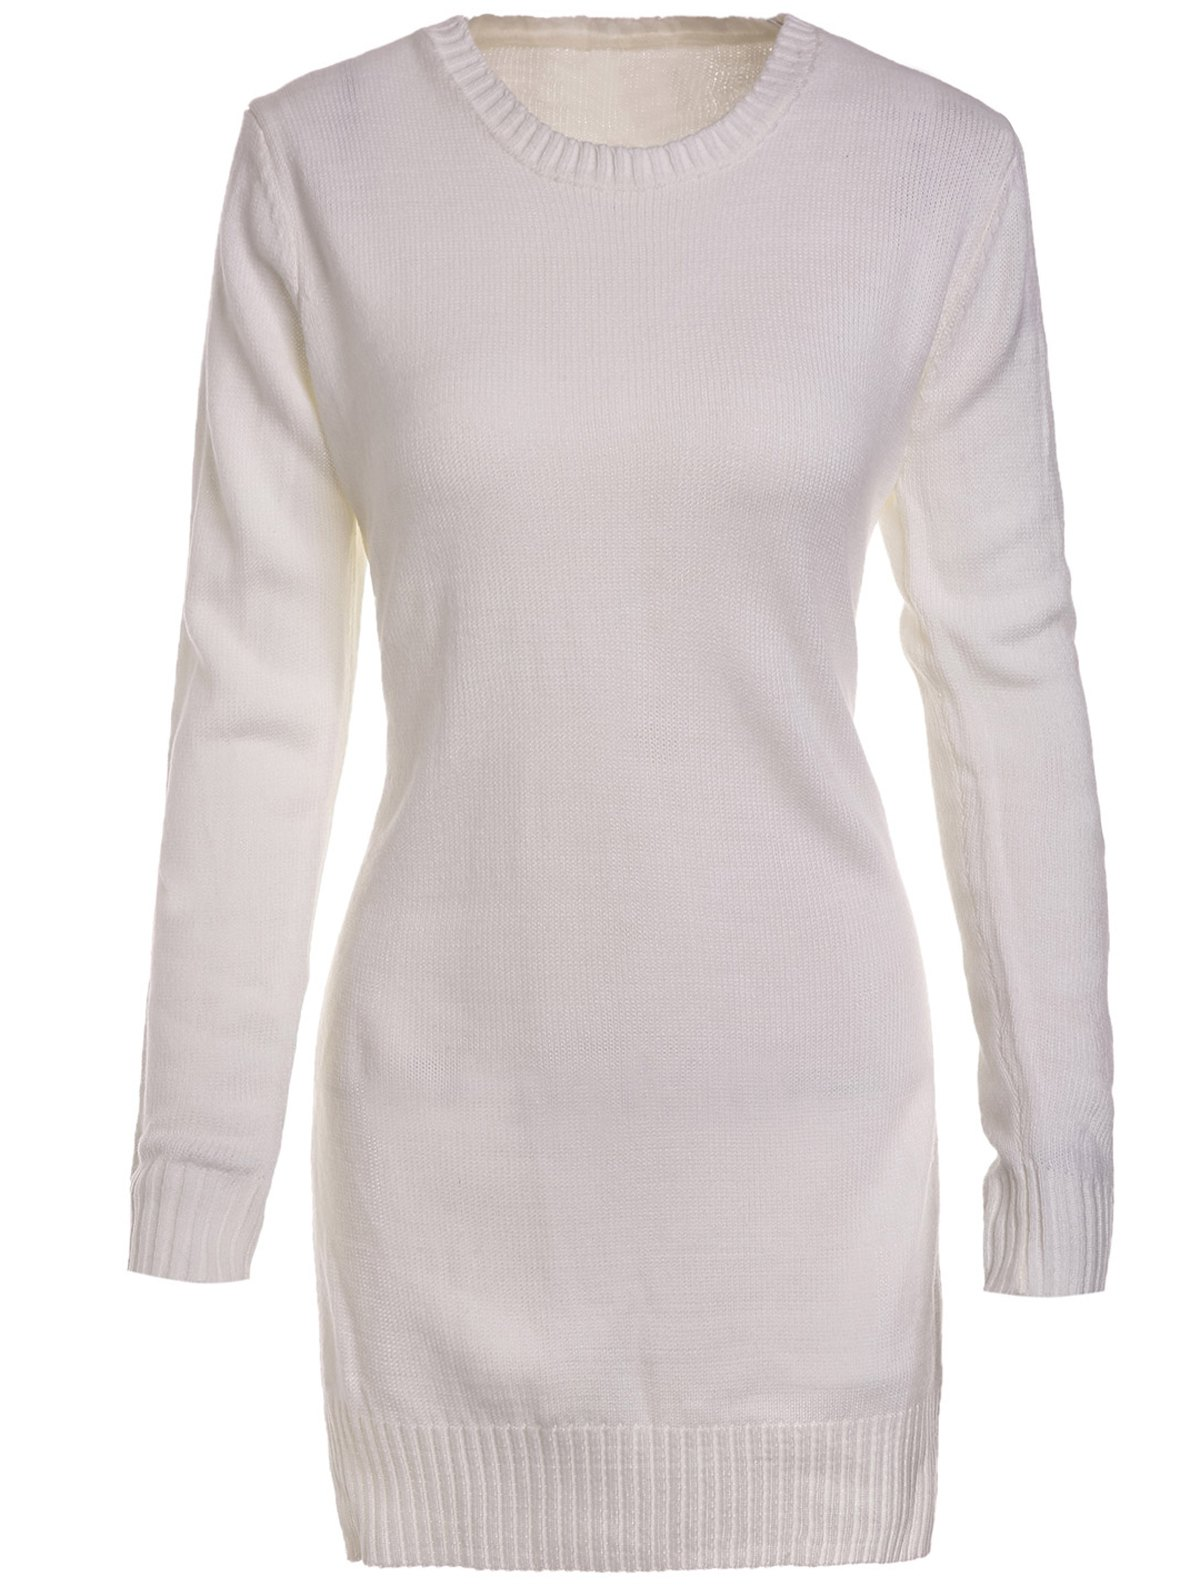 Sweet Round Neck High Slit White Sweater For WomenWOMEN<br><br>Size: M; Color: WHITE; Type: Pullovers; Material: Polyester; Sleeve Length: Full; Collar: Round Neck; Style: Fashion; Pattern Type: Solid; Weight: 0.316kg; Package Contents: 1 x Sweater;